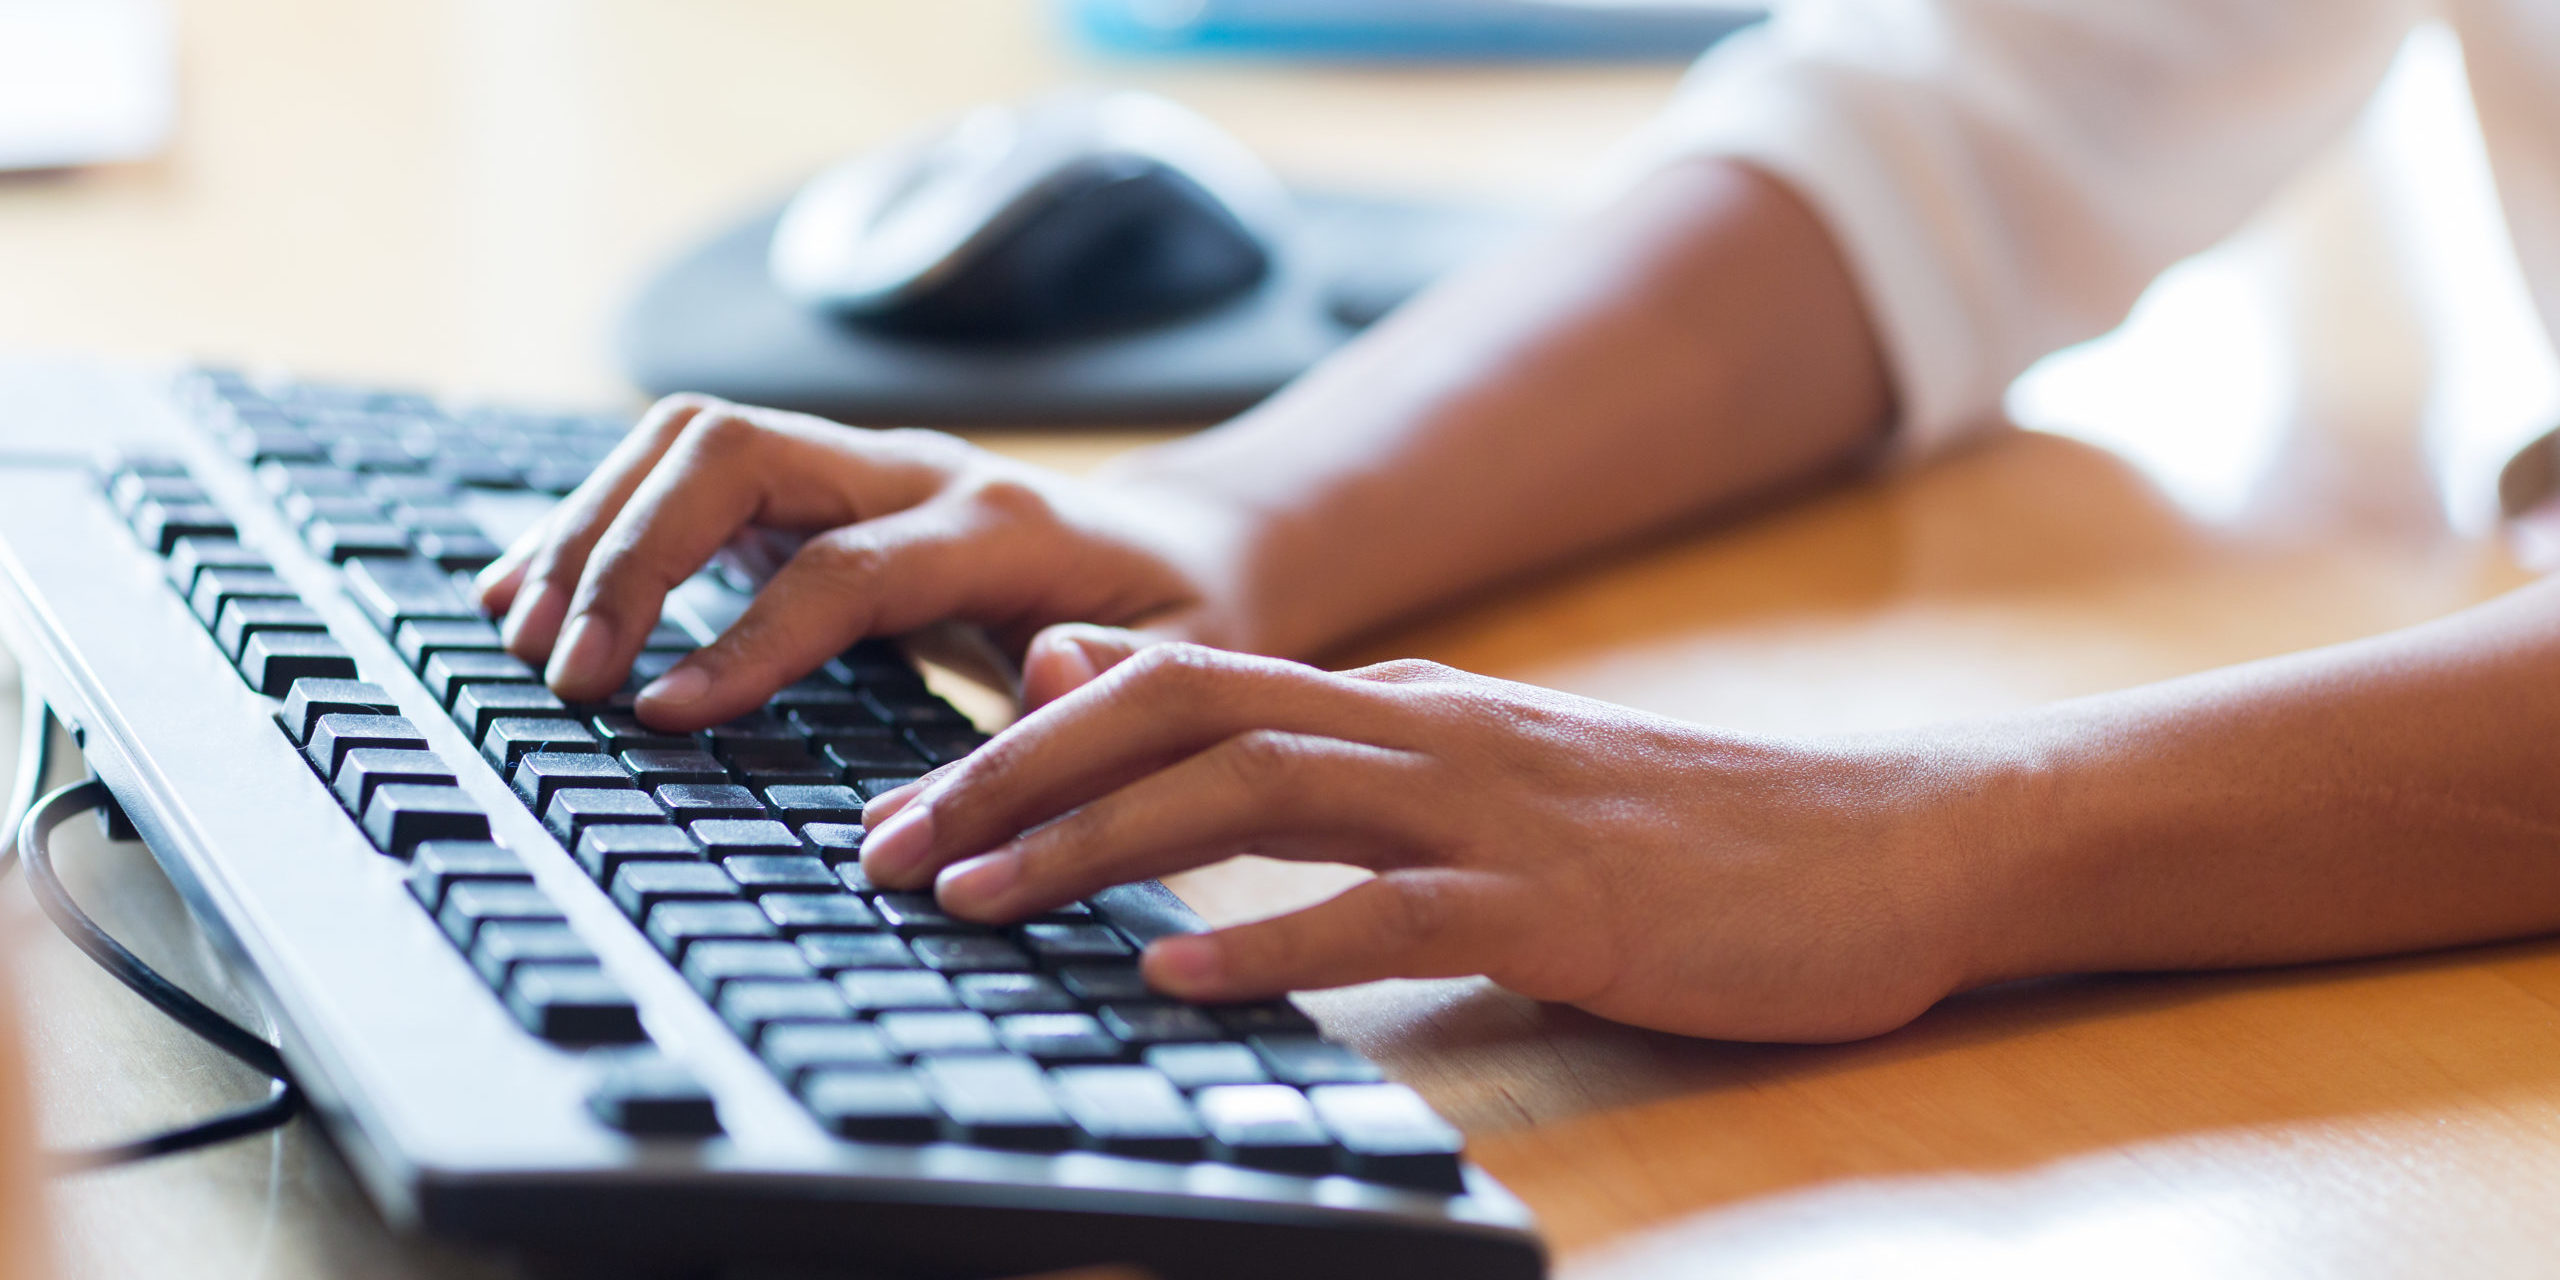 business, education, programming, people and technology concept - close up of african american female hands typing on keyboard